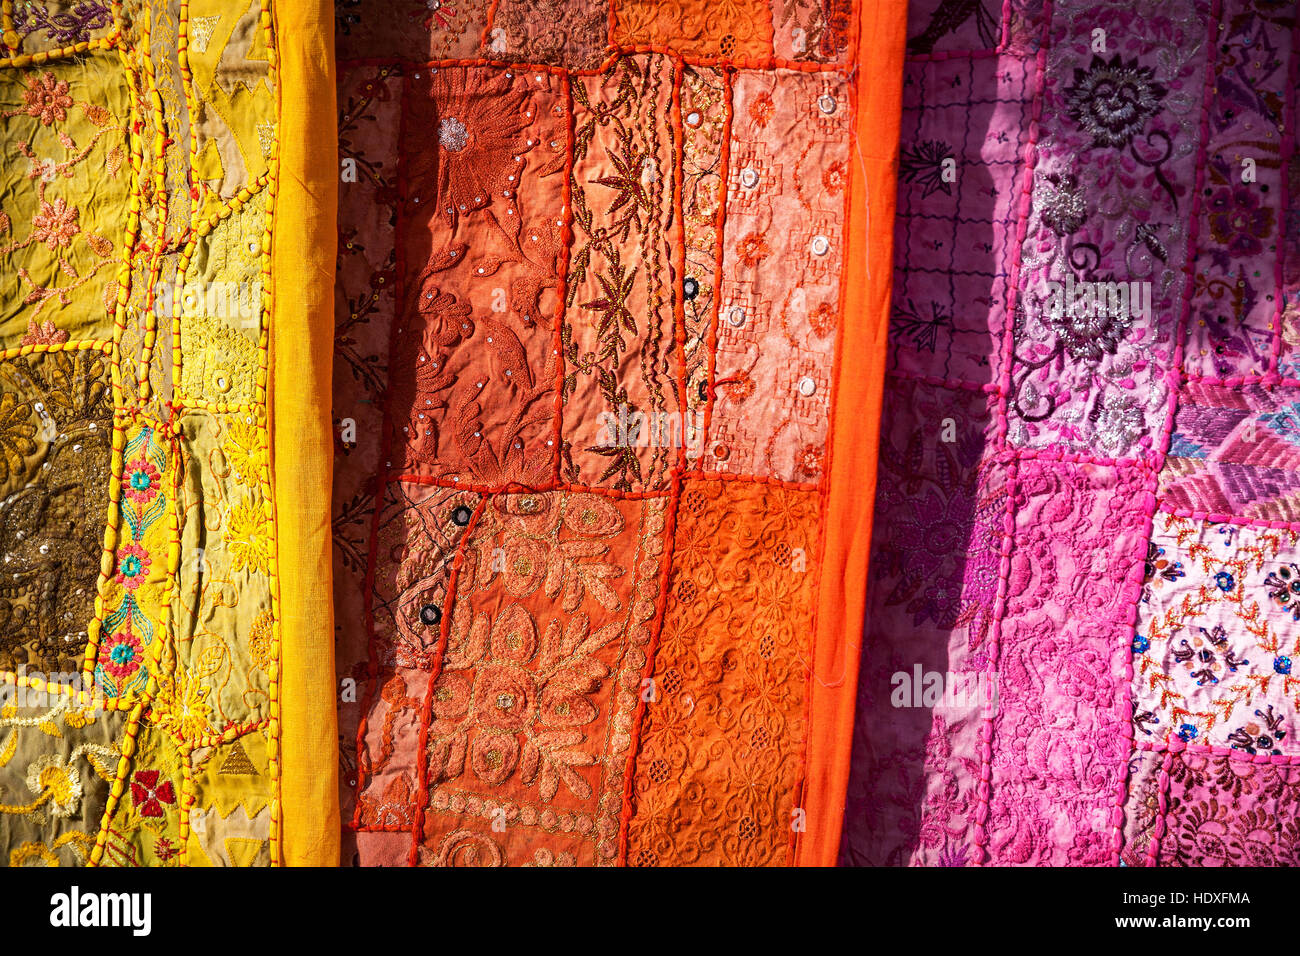 City street market with traditional clothes on the wall of Jaisalmer fort in Rajasthan, India - Stock Image